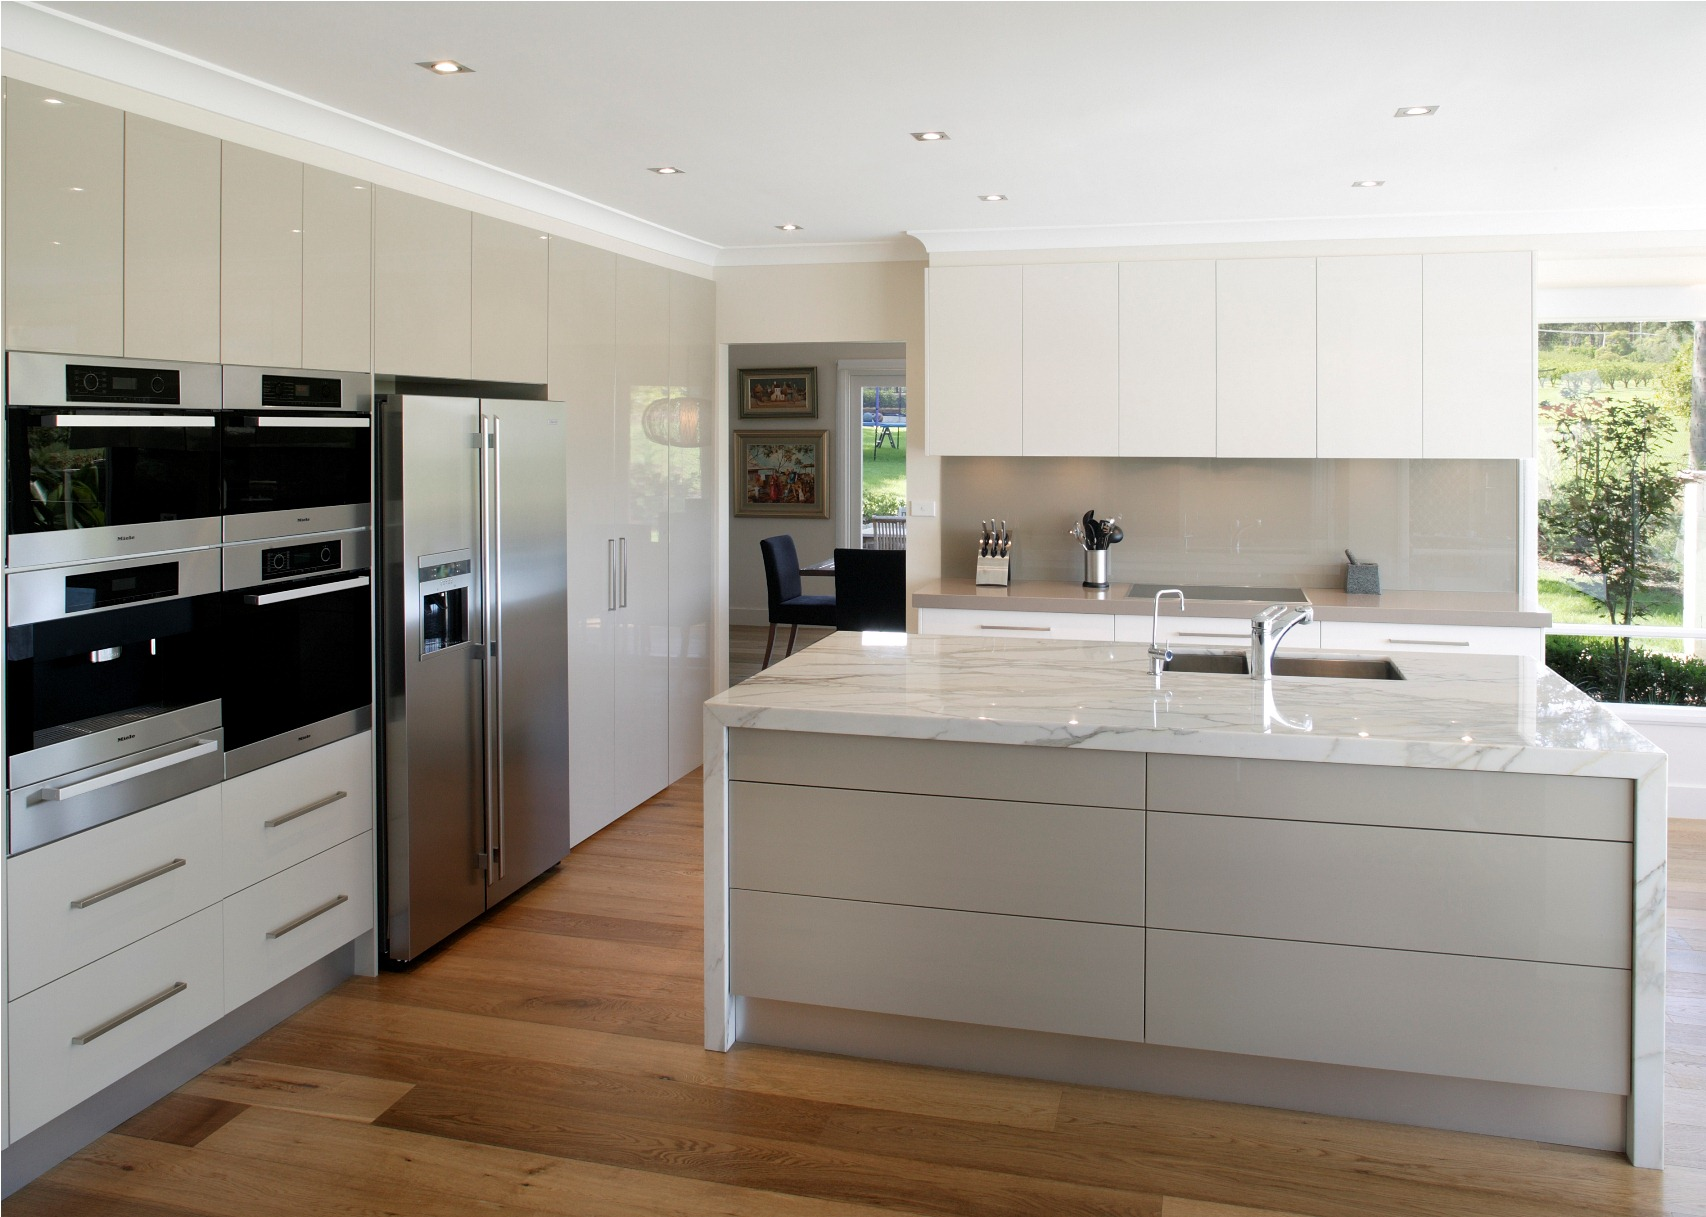 designer kitchens cape town beyond kitchens affordable kitchen cupboards cape town 412